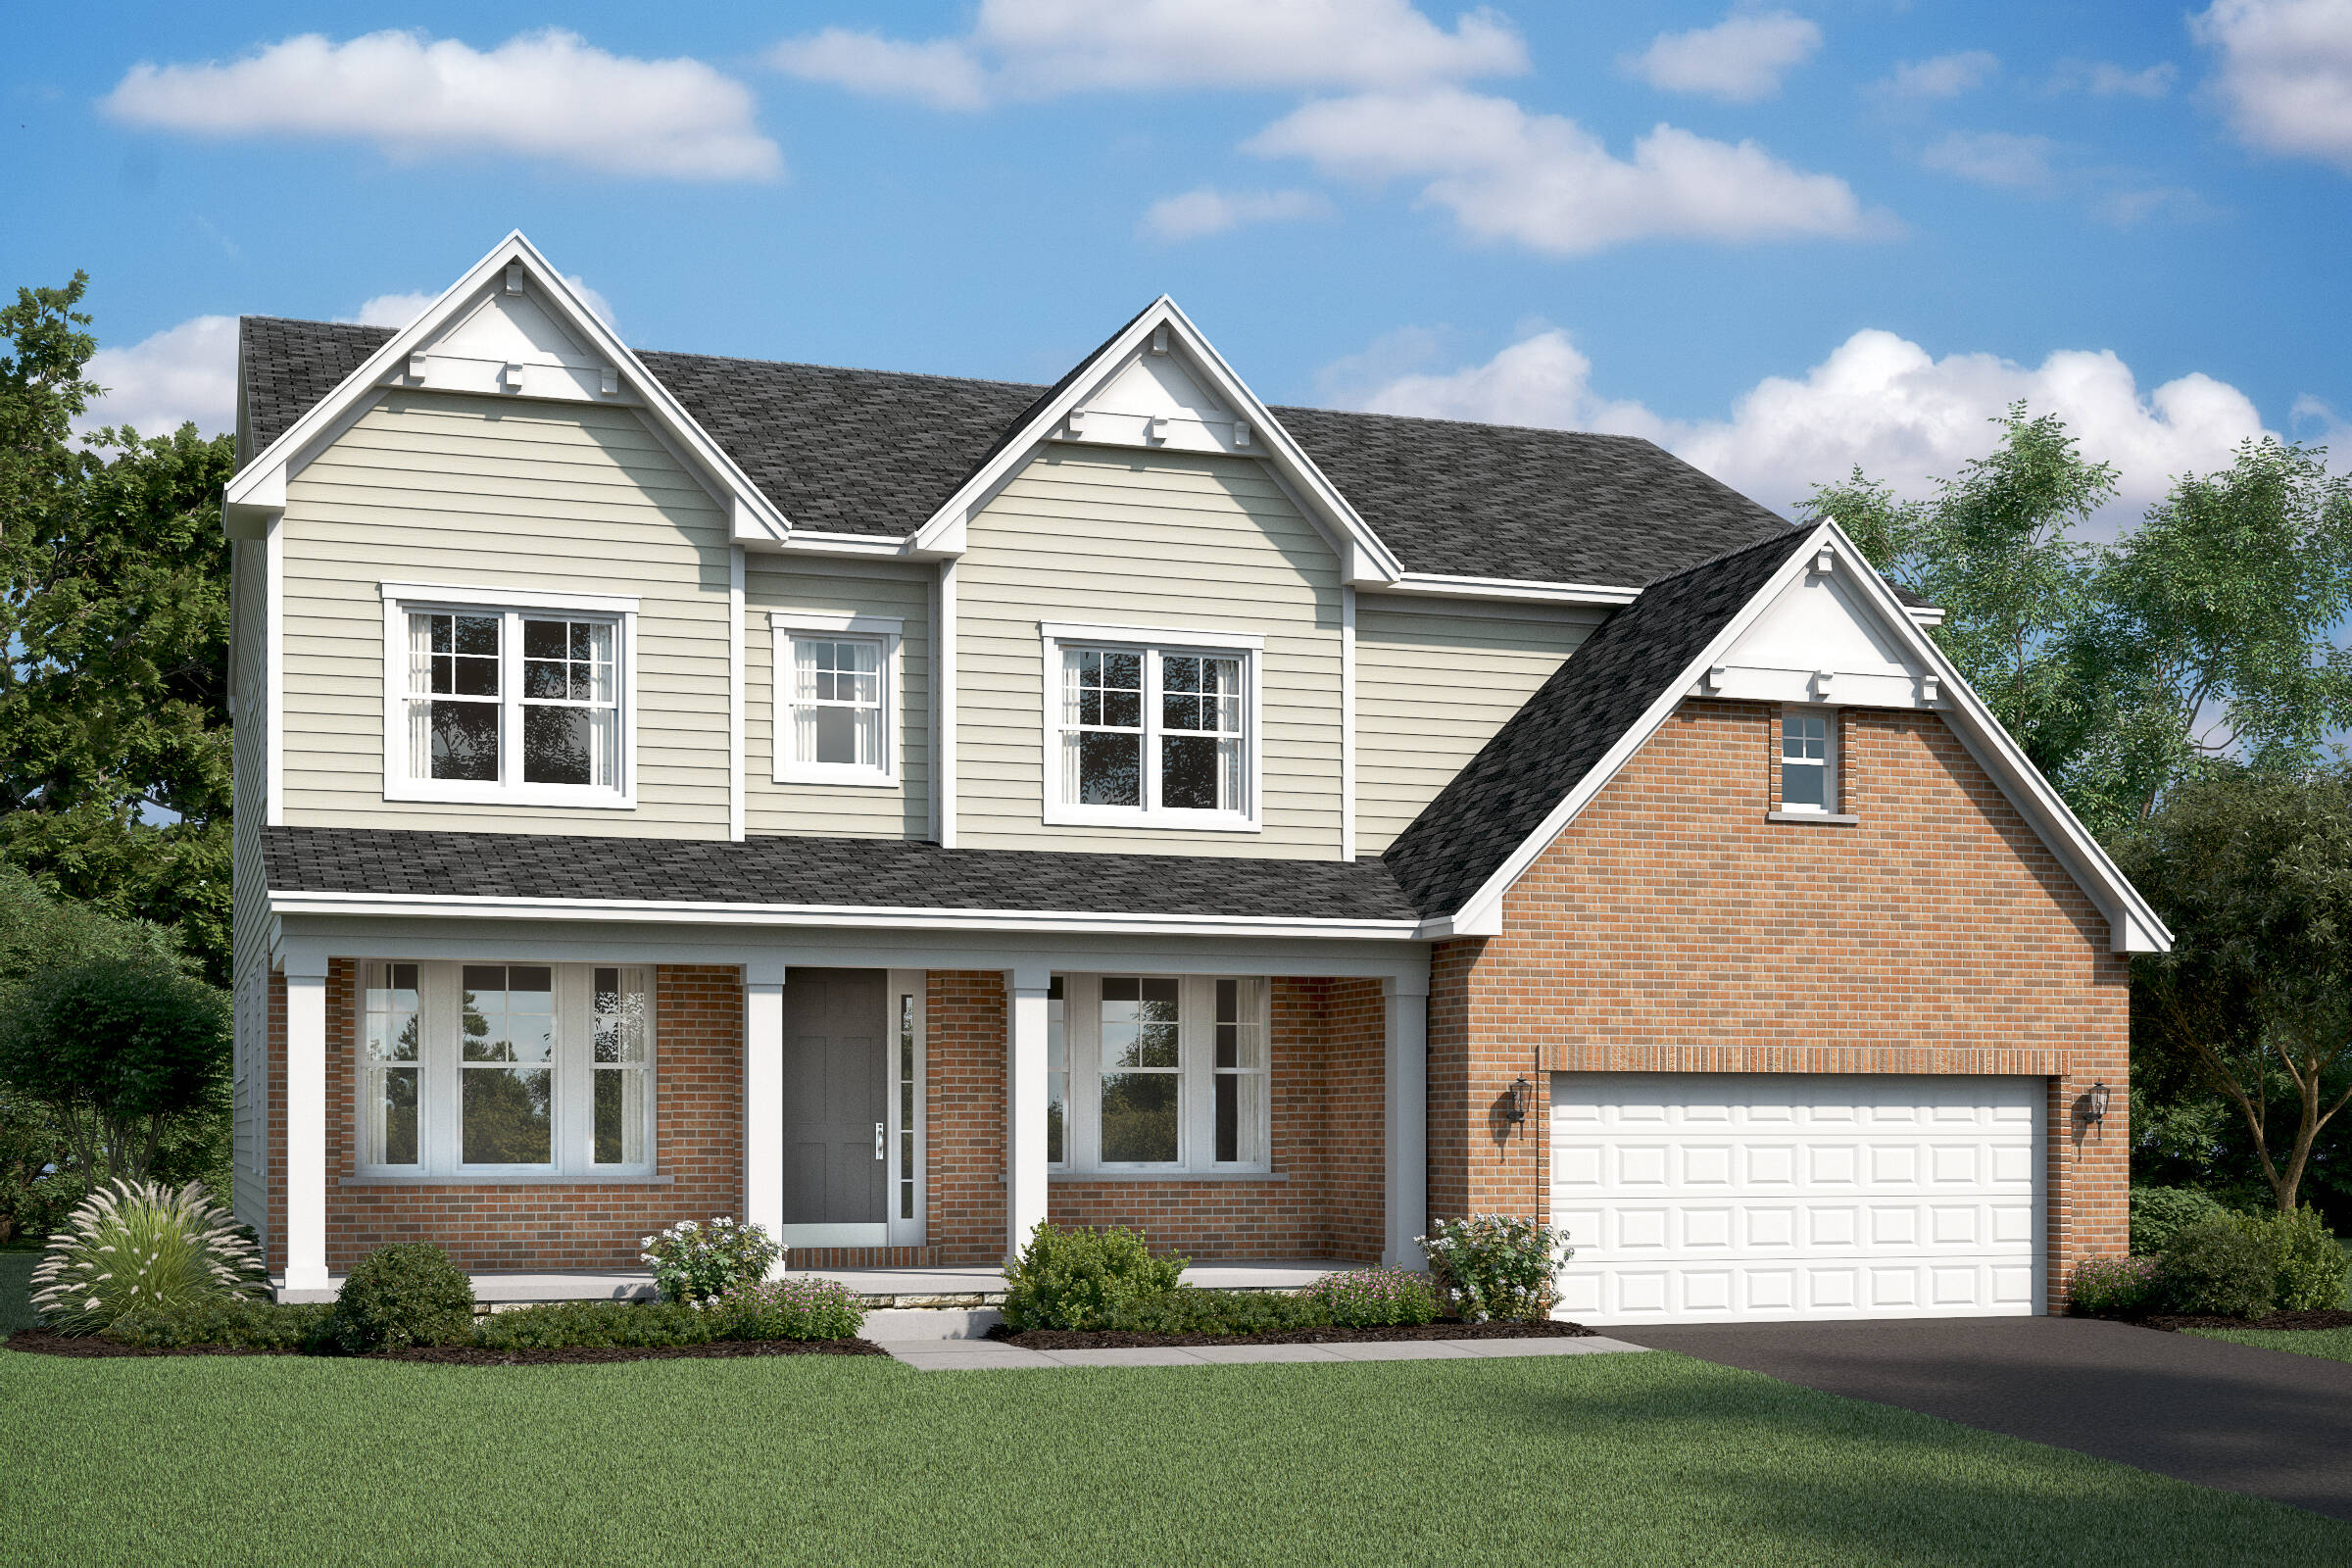 potomac e new homes at nicholson farm